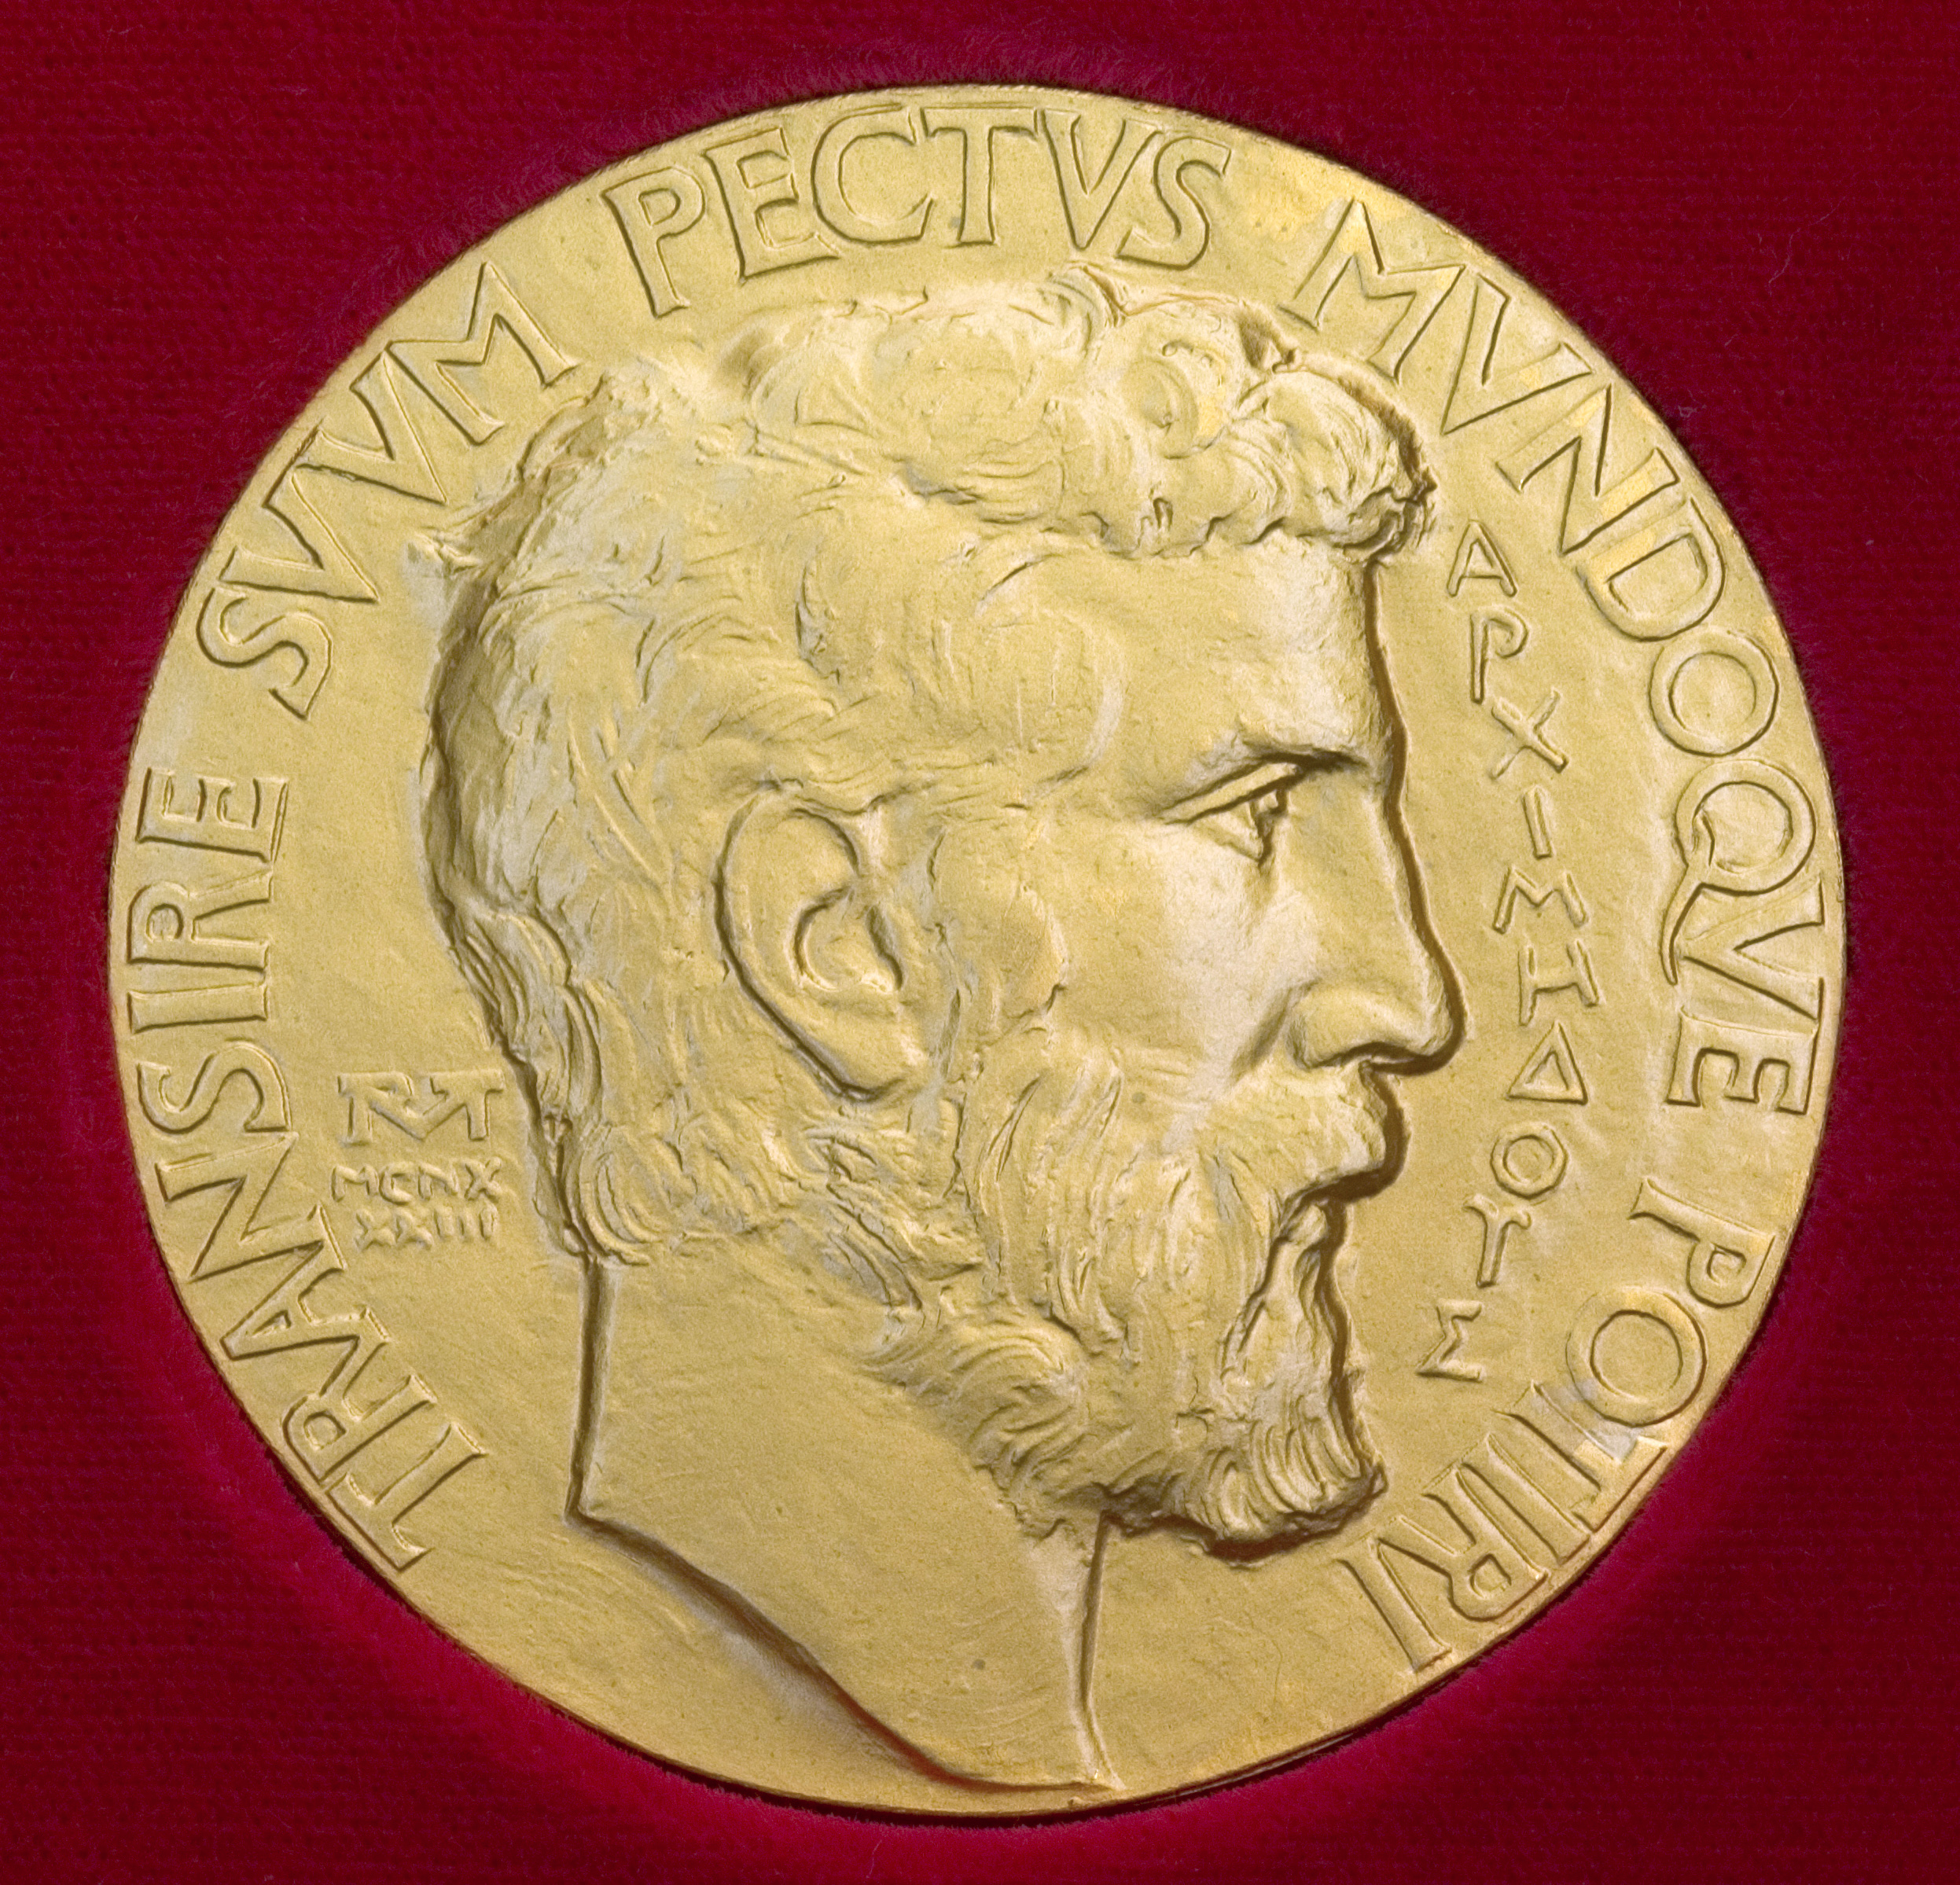 archimedes the fields medal carries a portrait of archimedes